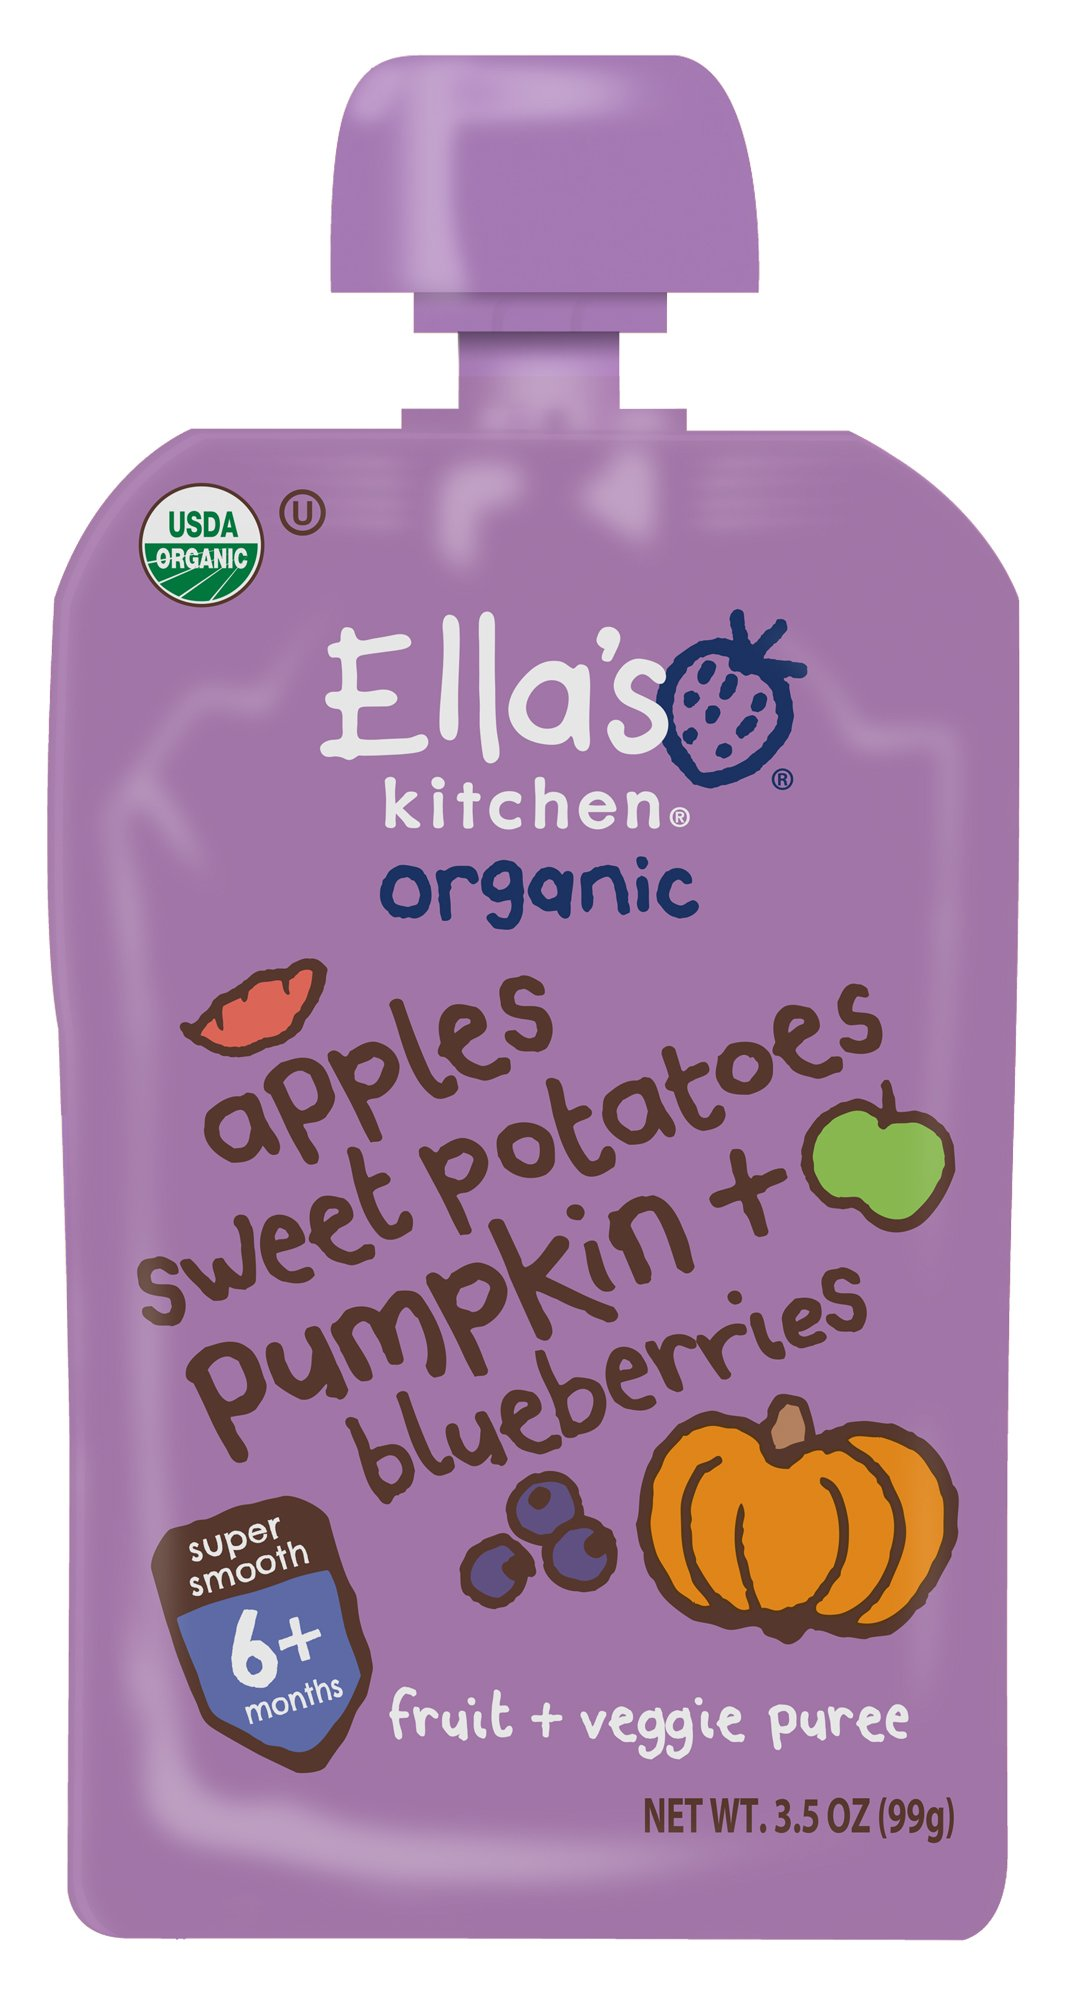 Ella's Kitchen Organic 6+ Months Baby Food, Apples Sweet Potatoes Pumpkin & Blueberries, 3.5 oz. Pouch (Pack of 6) by Ella's Kitchen